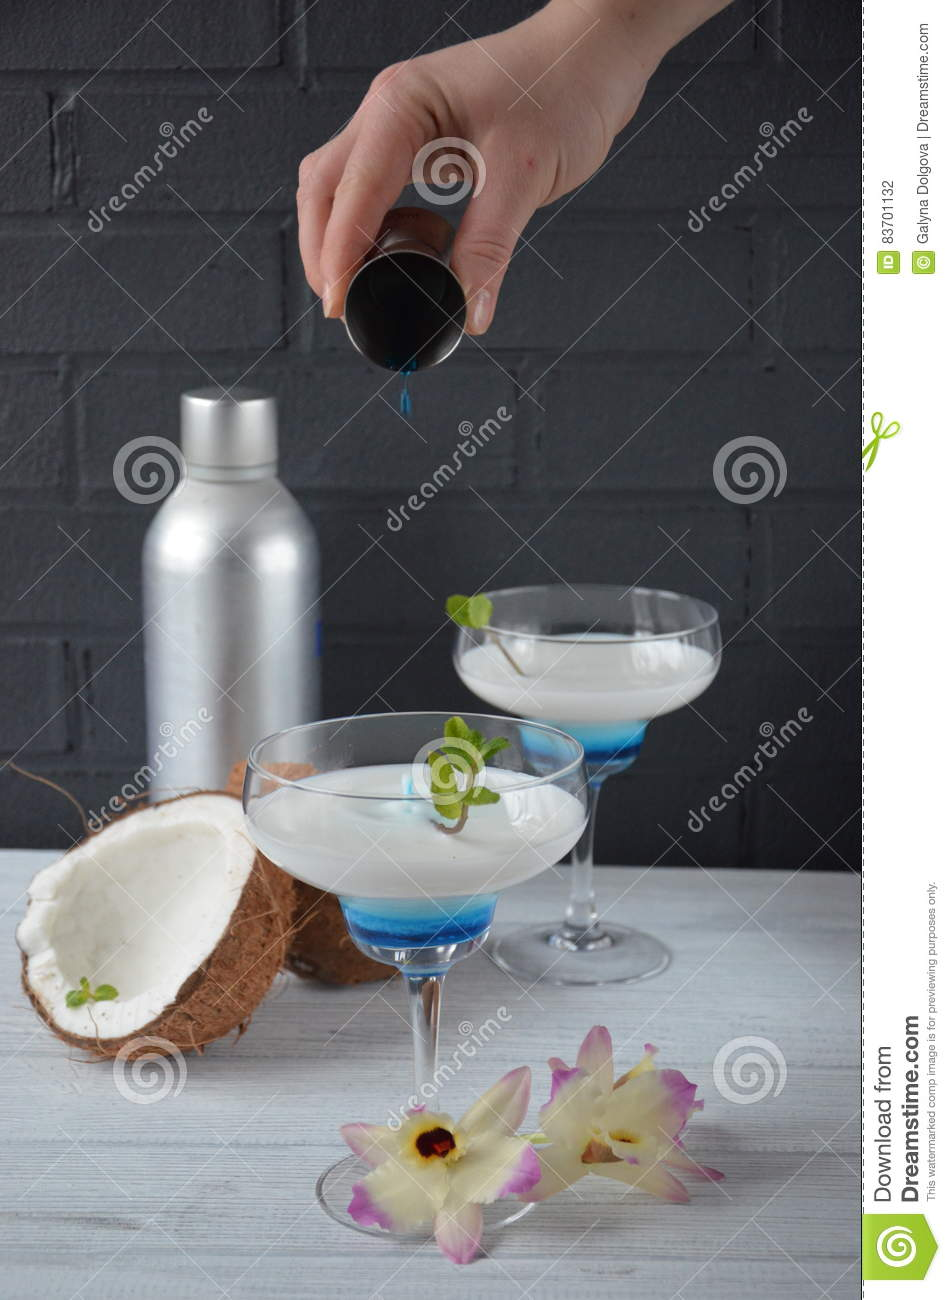 Pina Colada Drink In Cocktail Glass Decorated With Coconut And Orchid Flowers Stock Photo